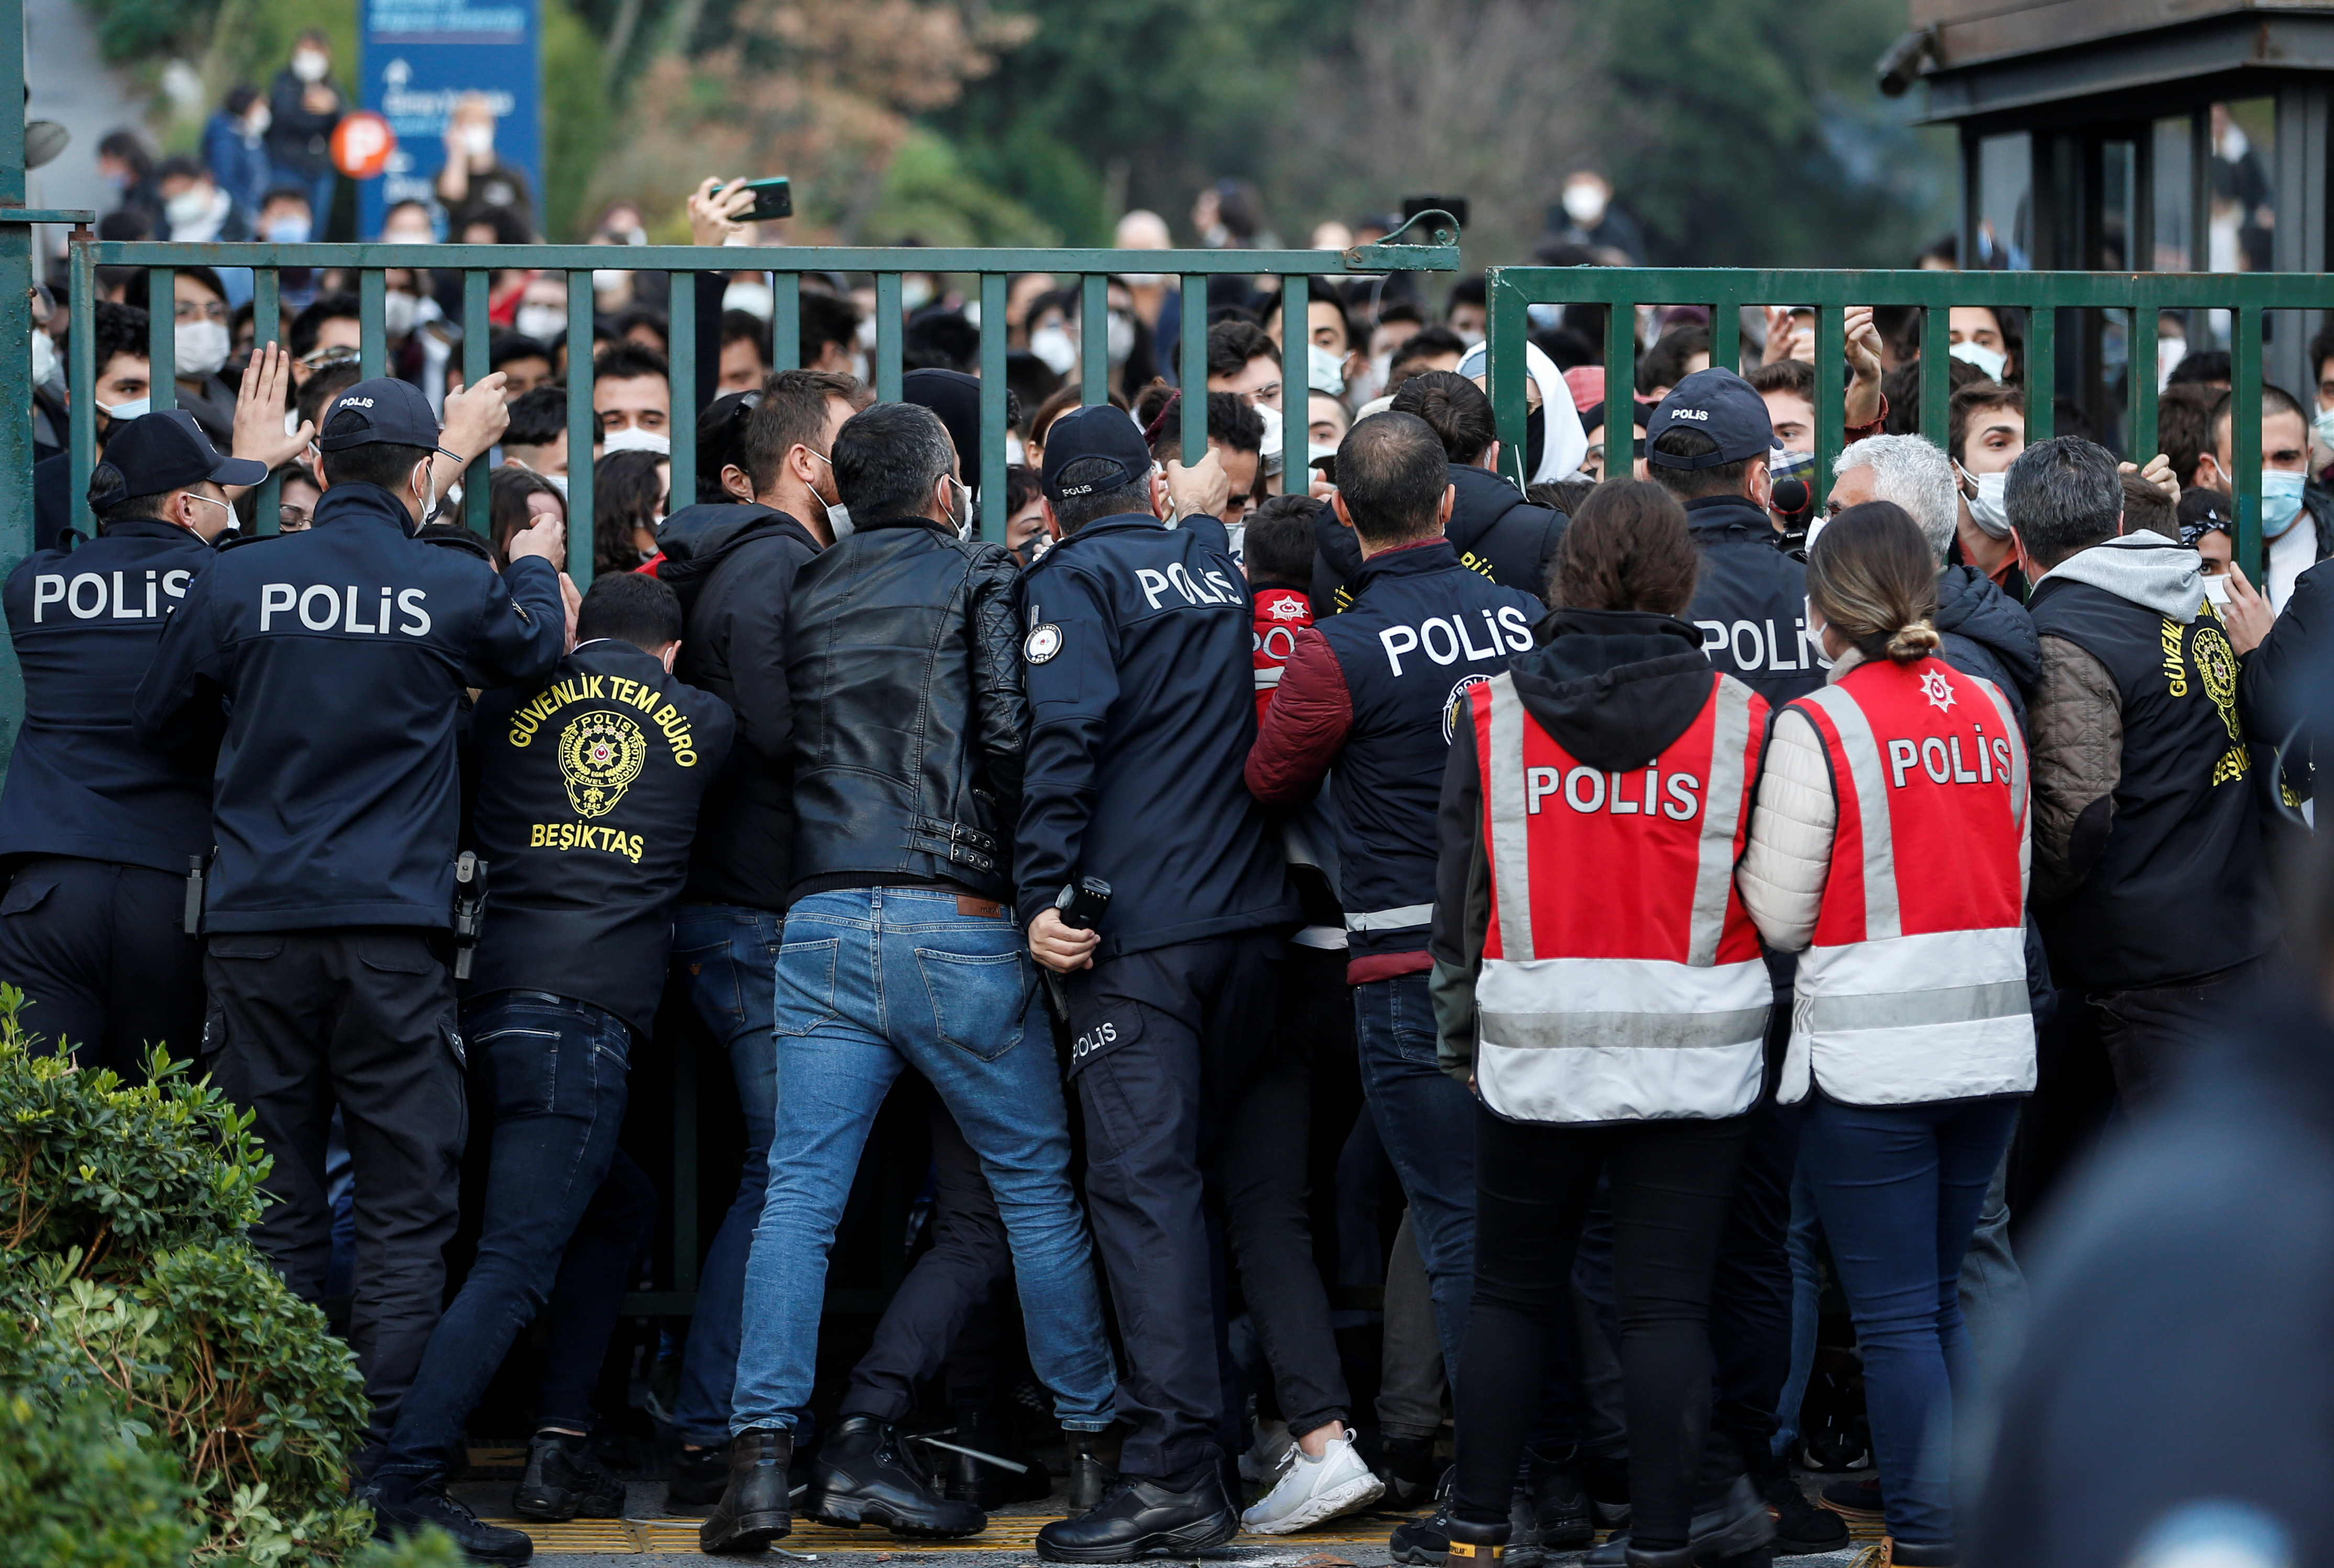 Turkish riot police blocks the main gate of Bogazici University to prevent students from leaving the campus as they protest against President Tayyip Erdogan's appointment of a new rector in Istanbul Turkey January 4, 2021. REUTERS/Kemal Aslan